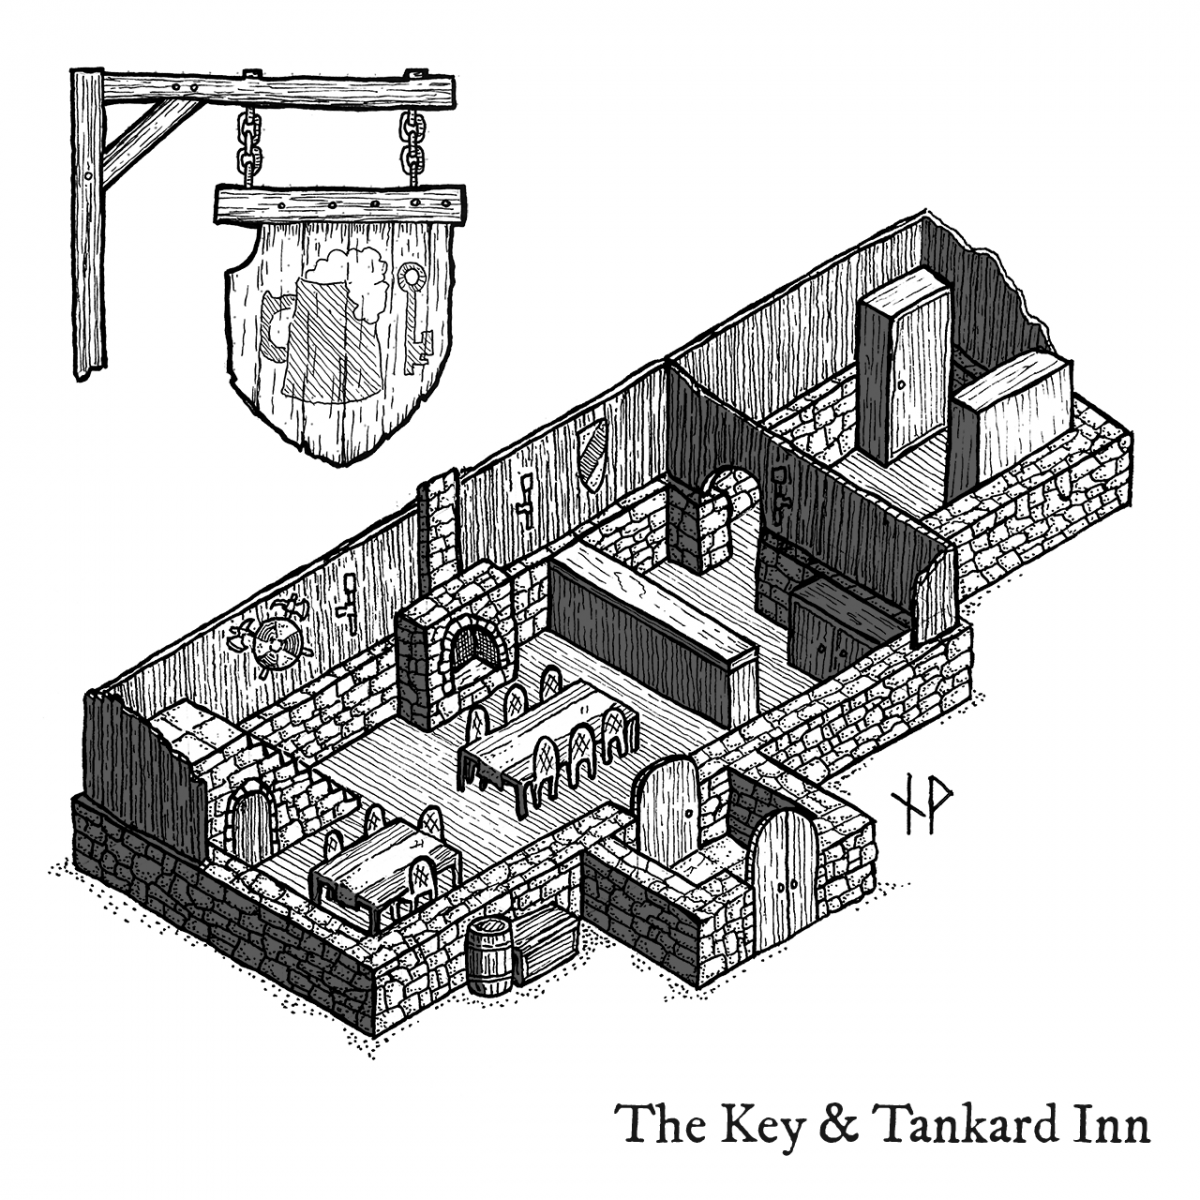 Isometric map: The Key & Tankard inn